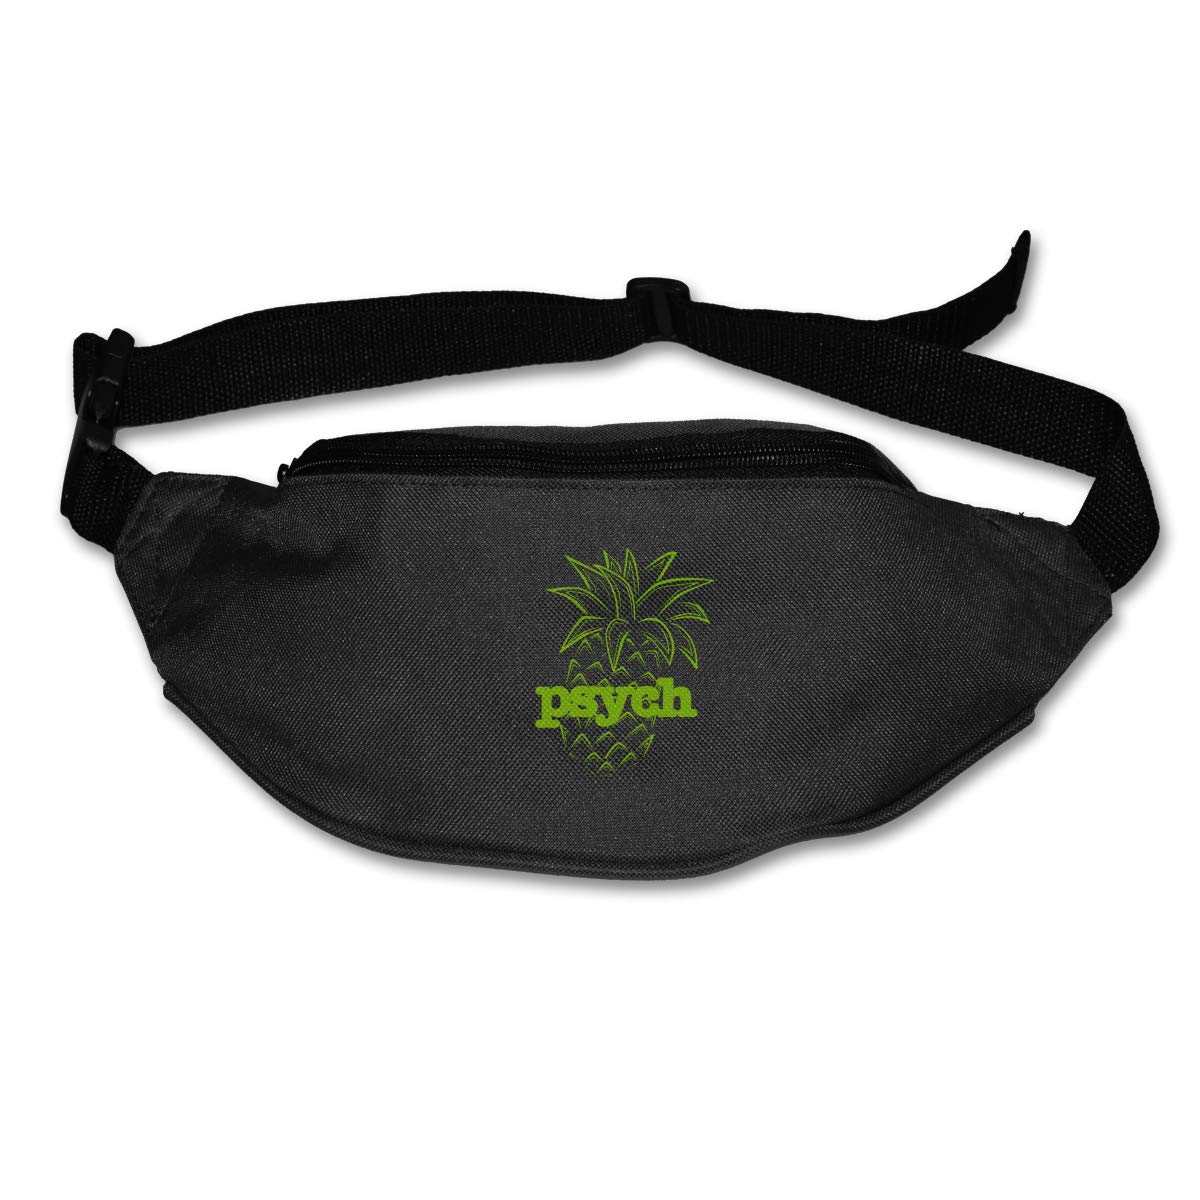 Psych Pineapple Sport Waist Bag Fanny Pack Adjustable For Run